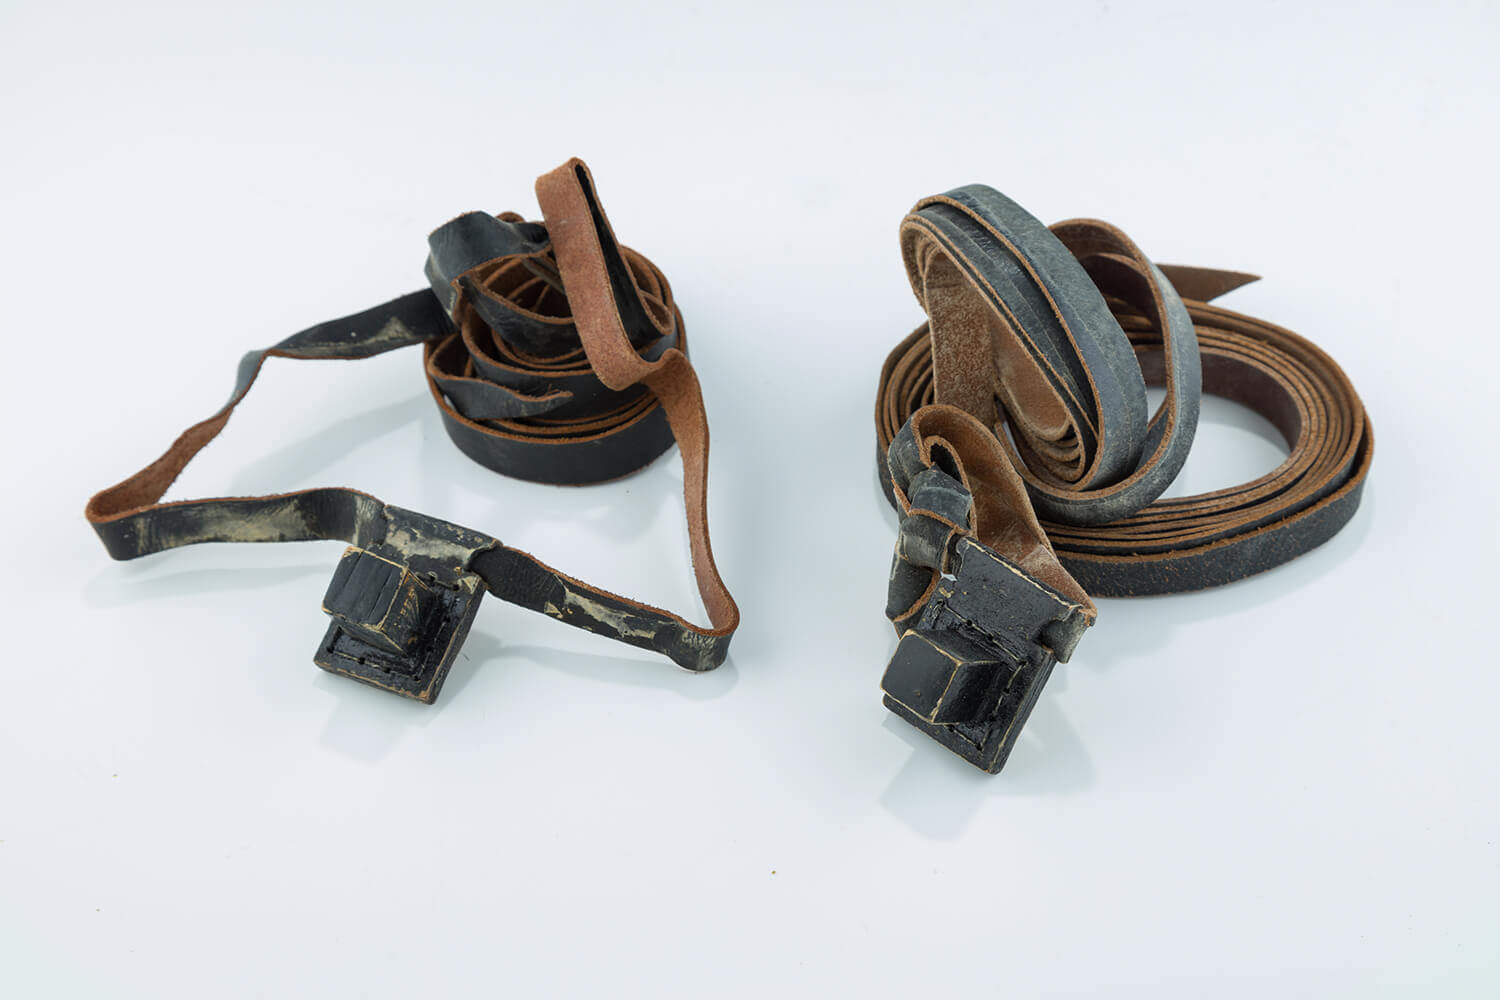 021. THREE PAIRS OF MINIATURE TEFILLIN